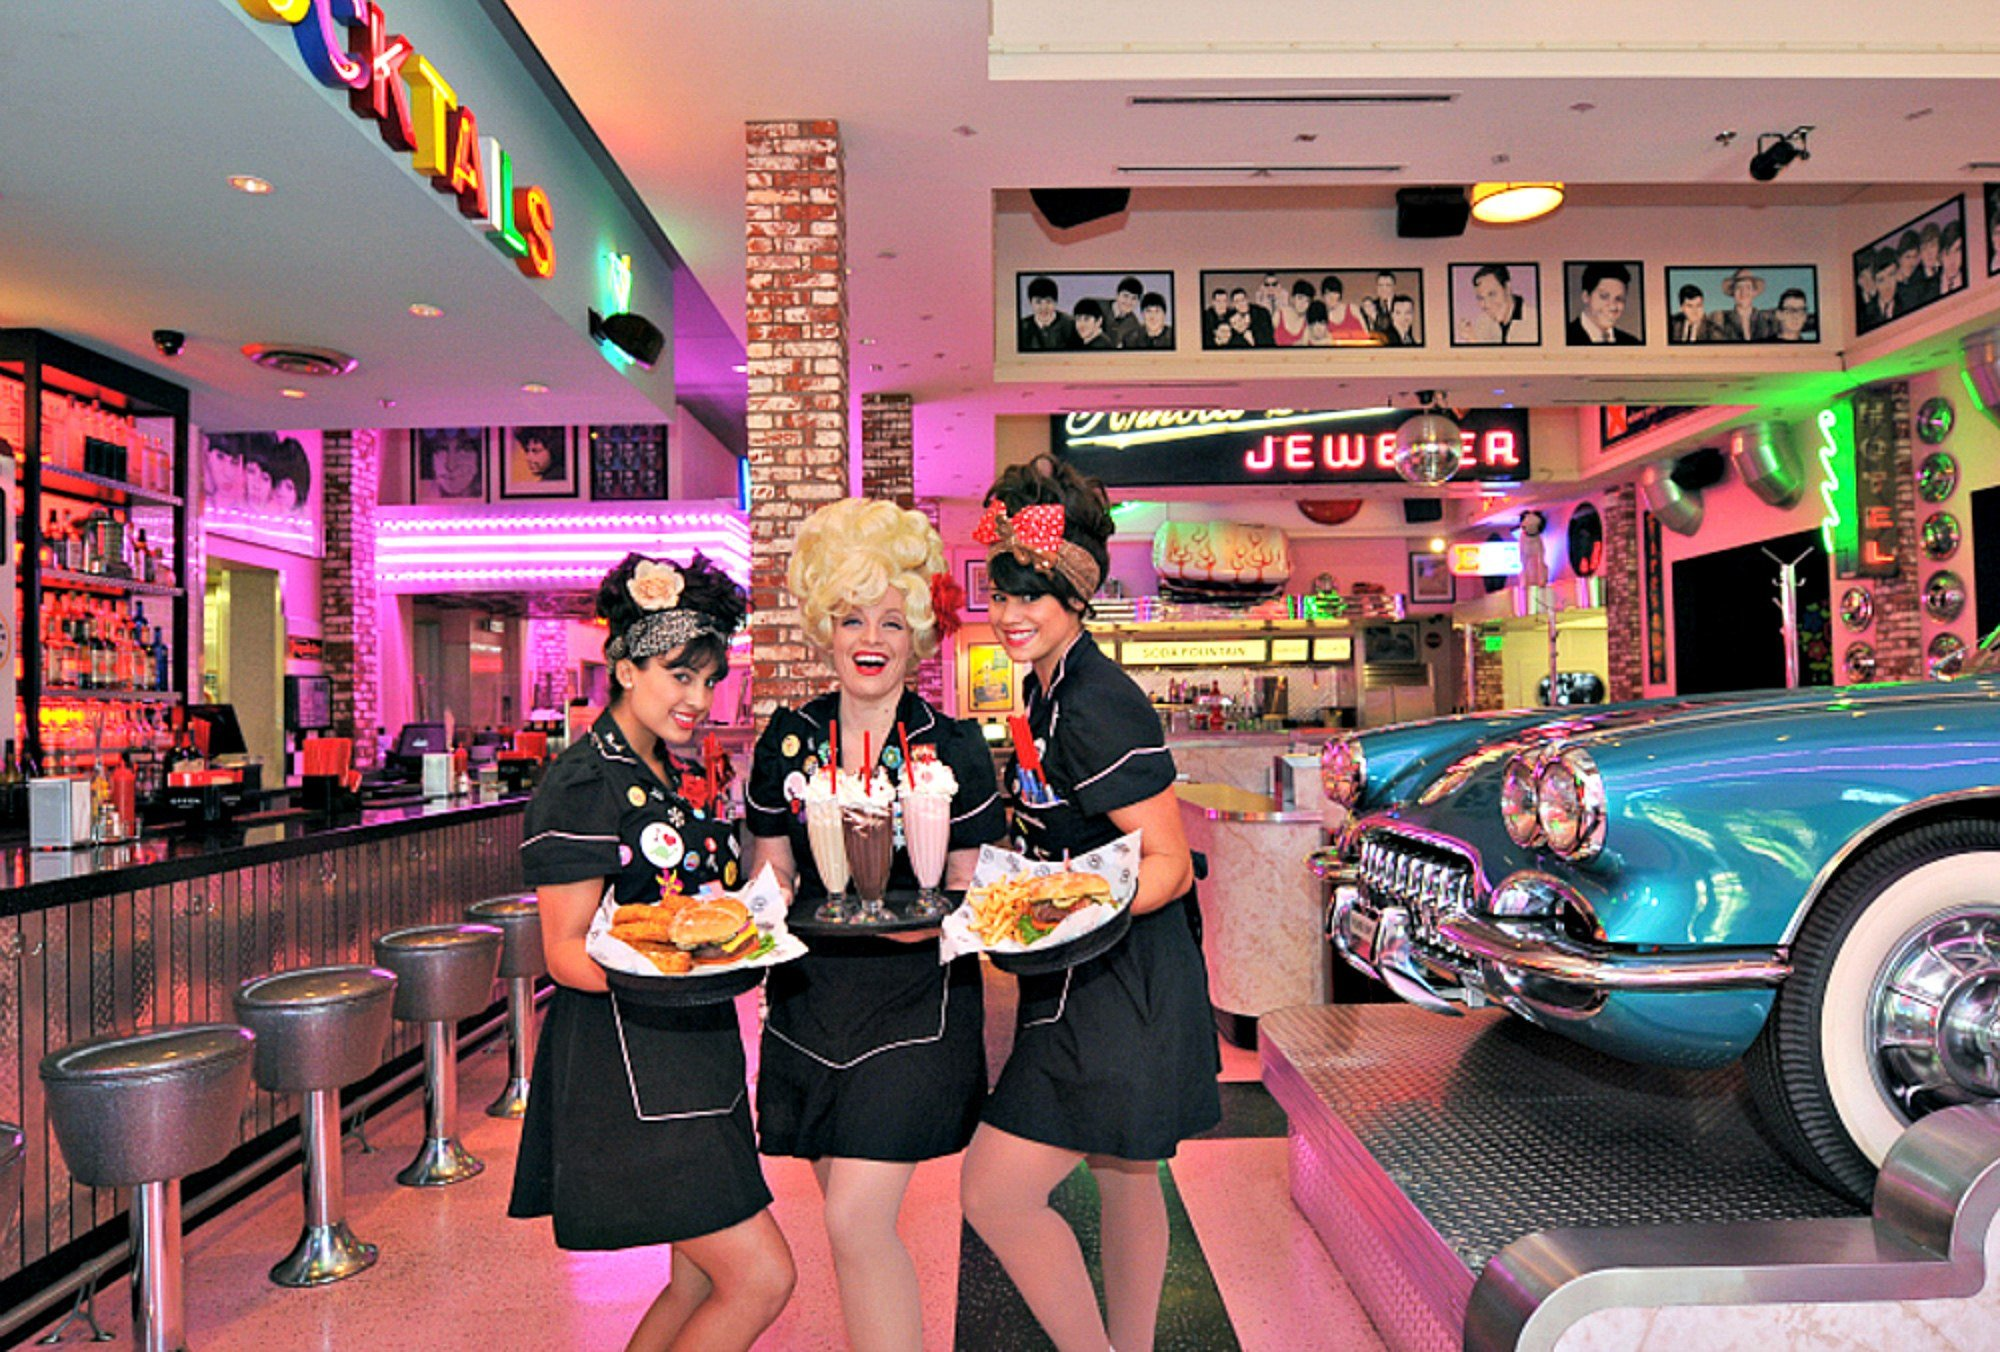 Corvette Diner at Liberty Station in San Diego with kids (Photo credit: Corvette Diner)